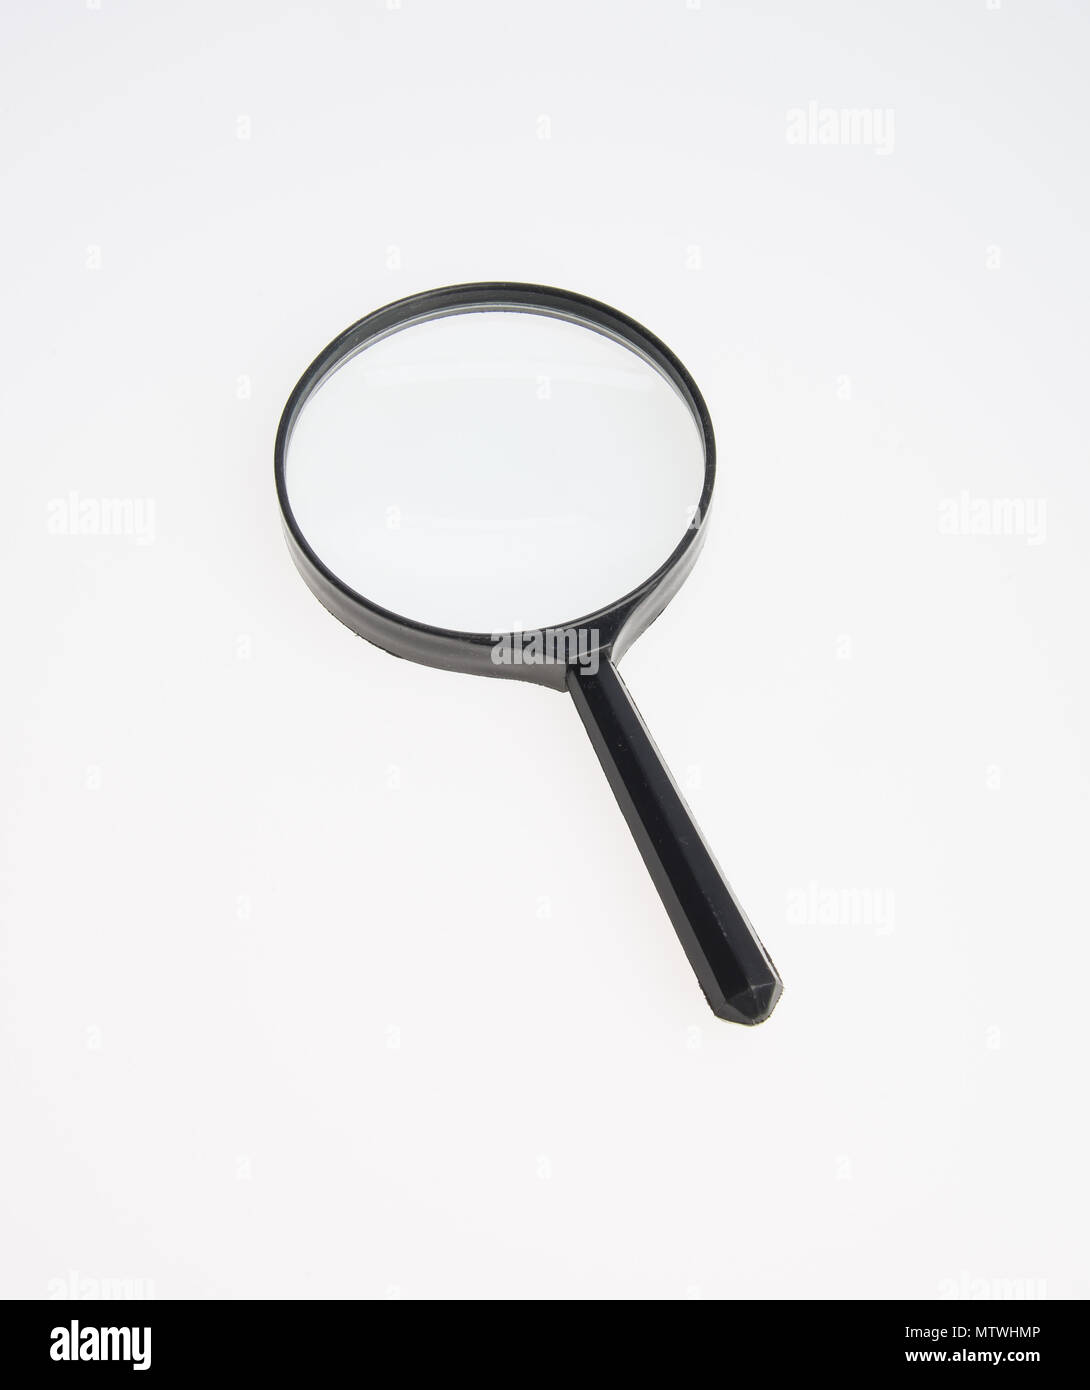 Magnifying Glass or Magnify on a background - Stock Image